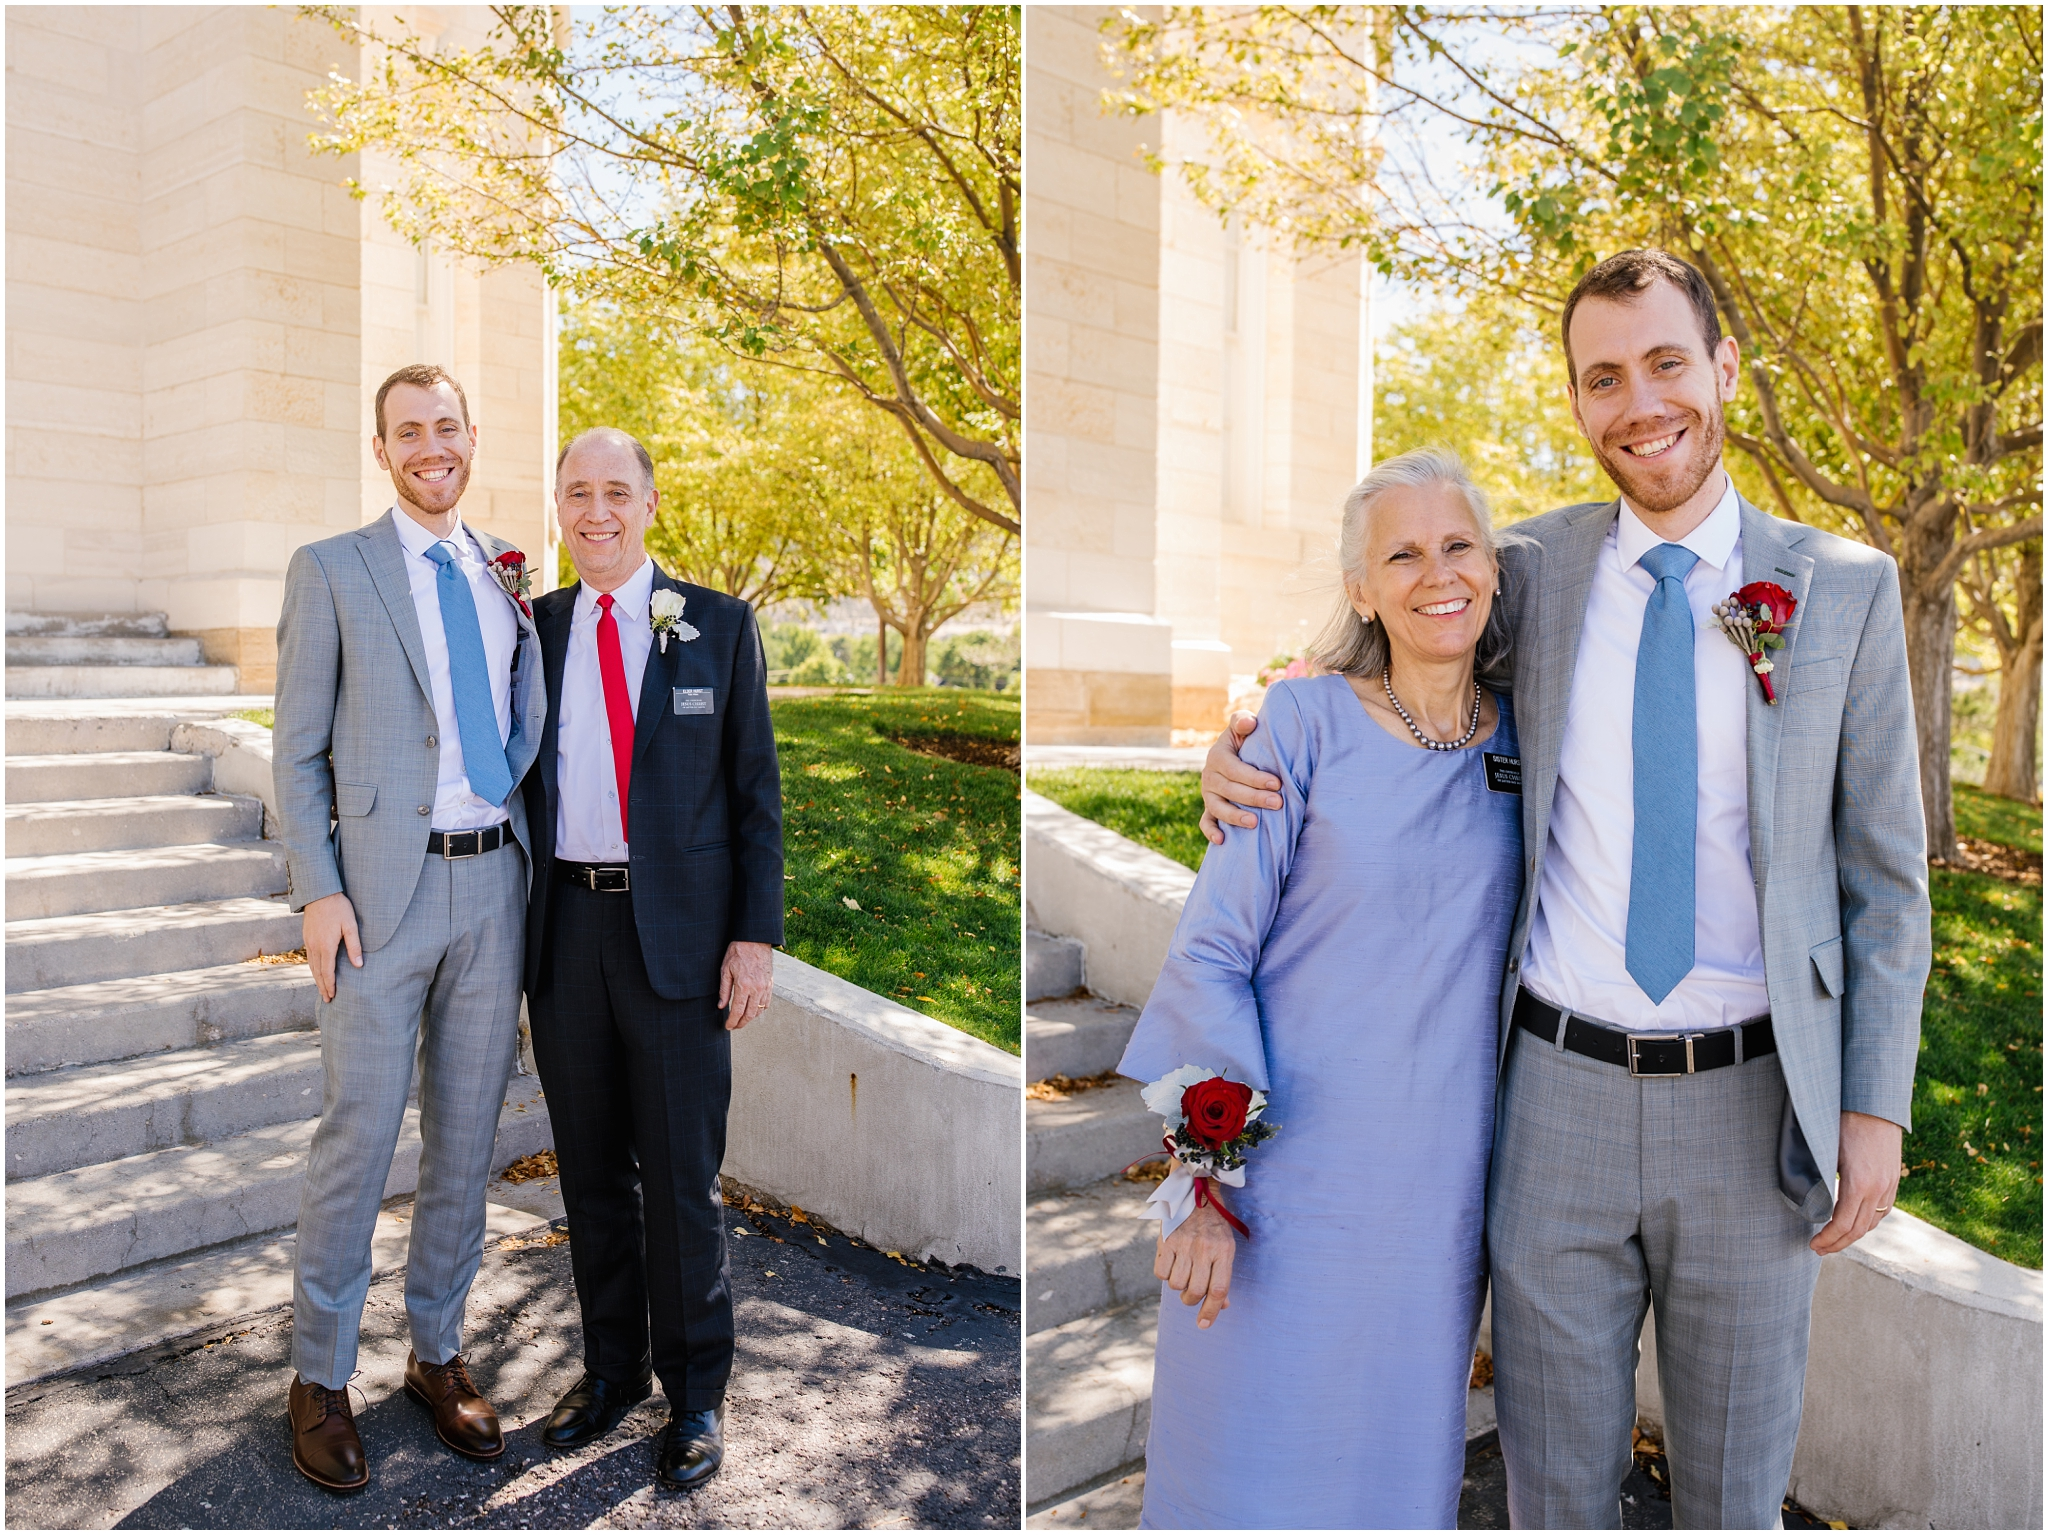 BrynneWinston-58_Lizzie-B-Imagery-Utah-Wedding-Photographer-Utah-County-Manti-Temple.jpg